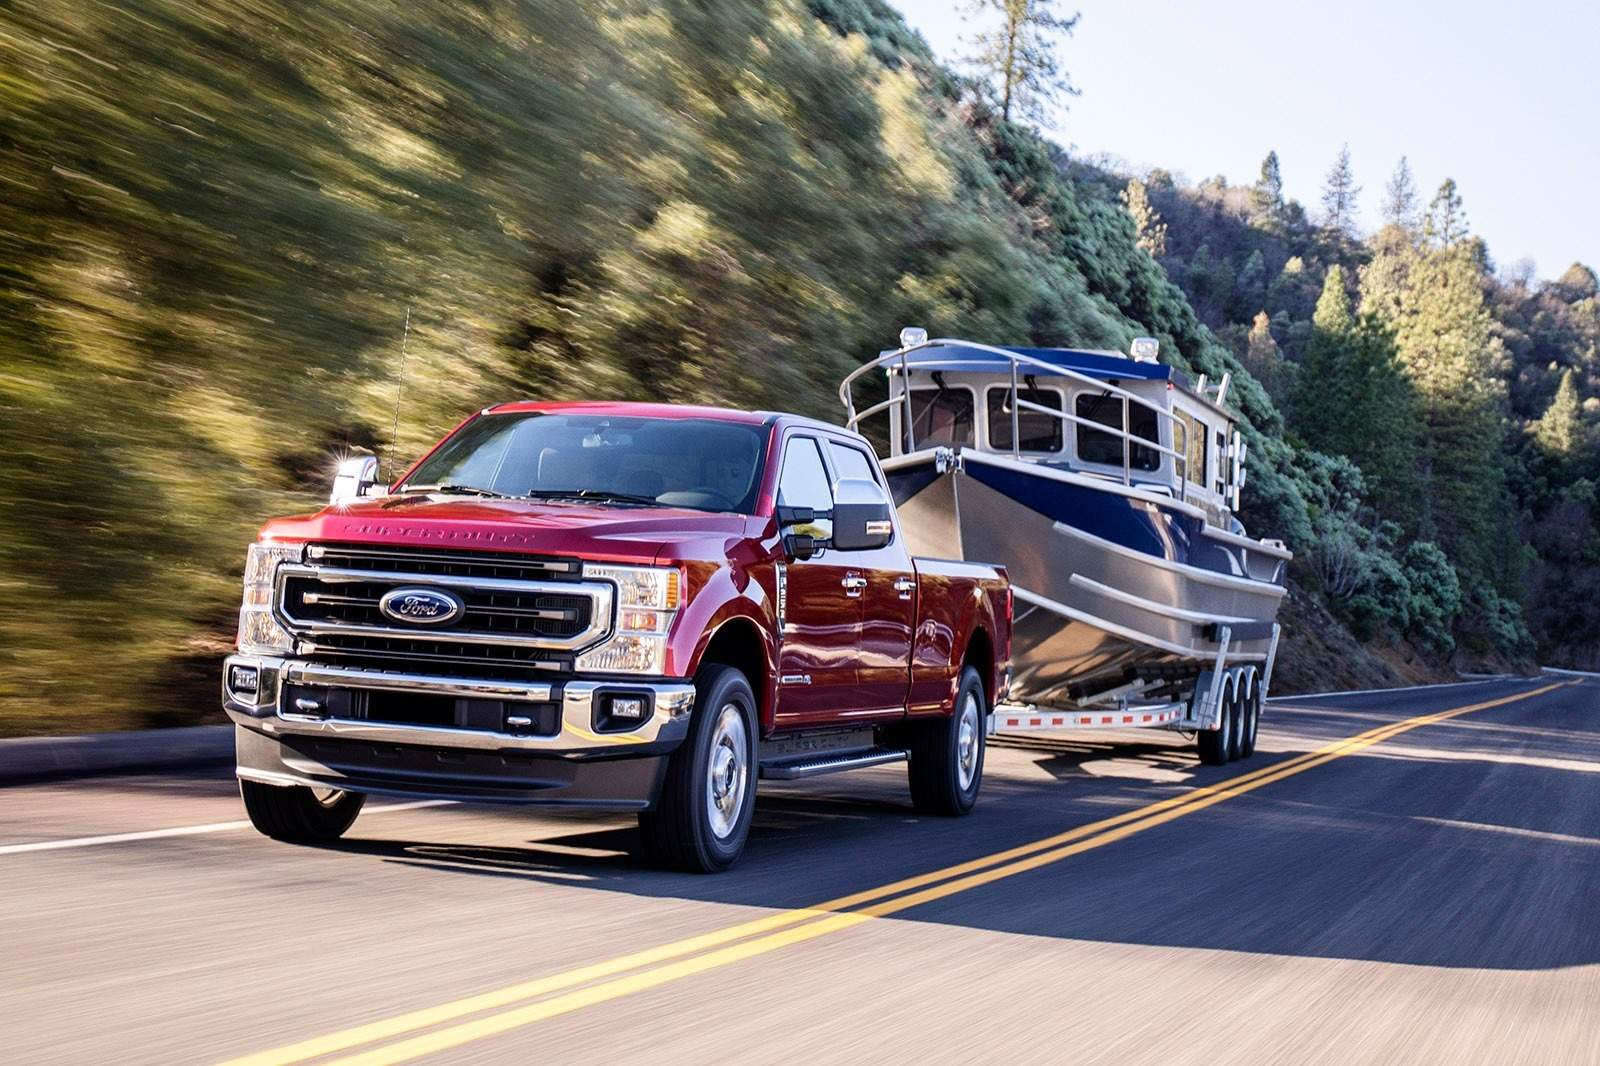 58 A 2020 Ford F350 Super Duty Images